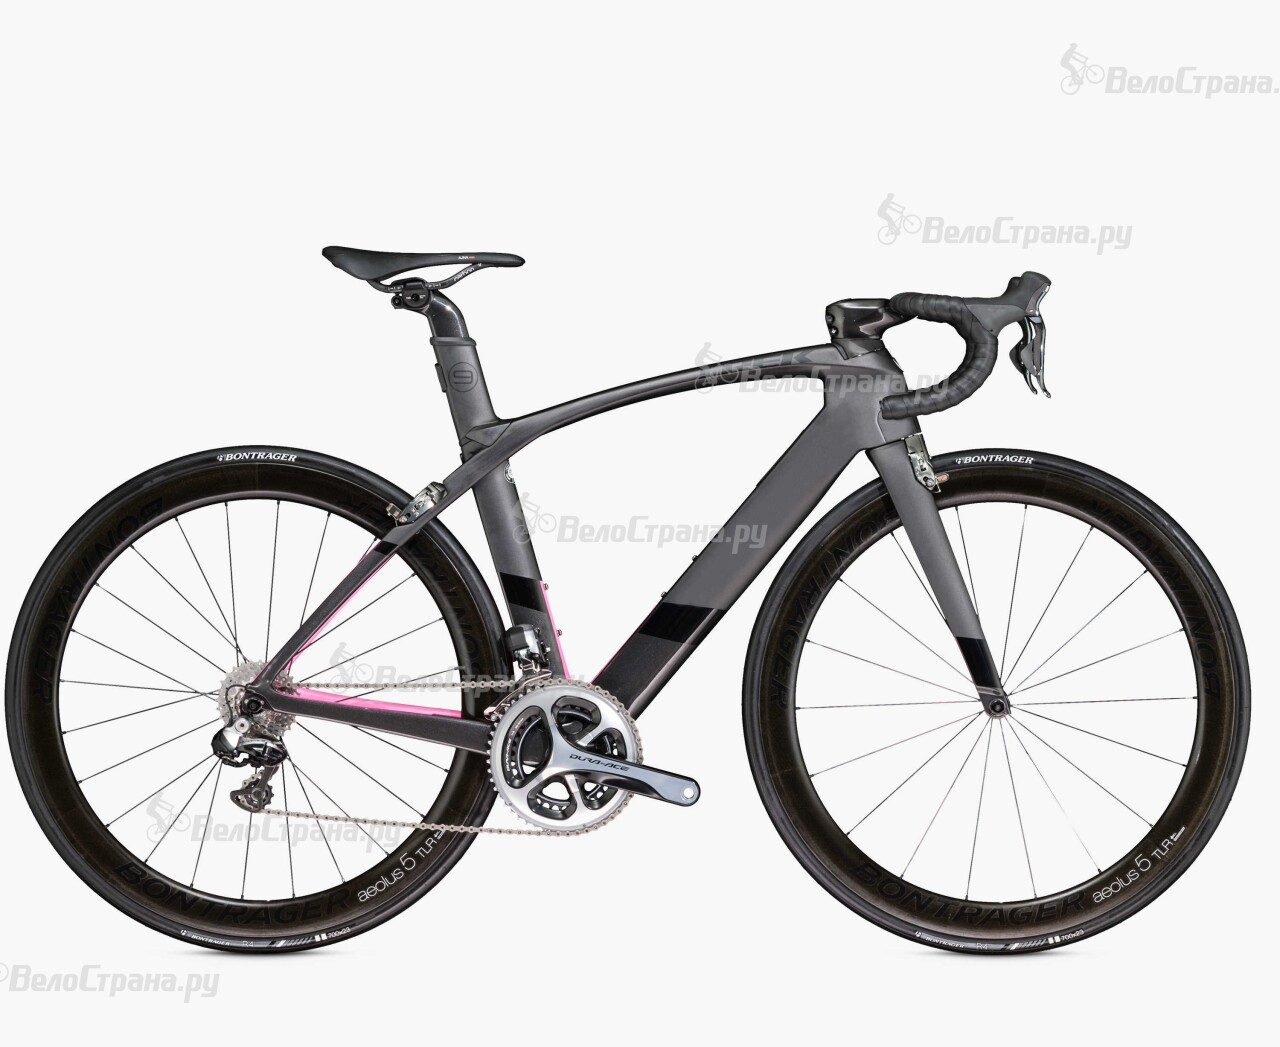 цена Велосипед Trek MADONE 9.9 WOMEN'S (2016)